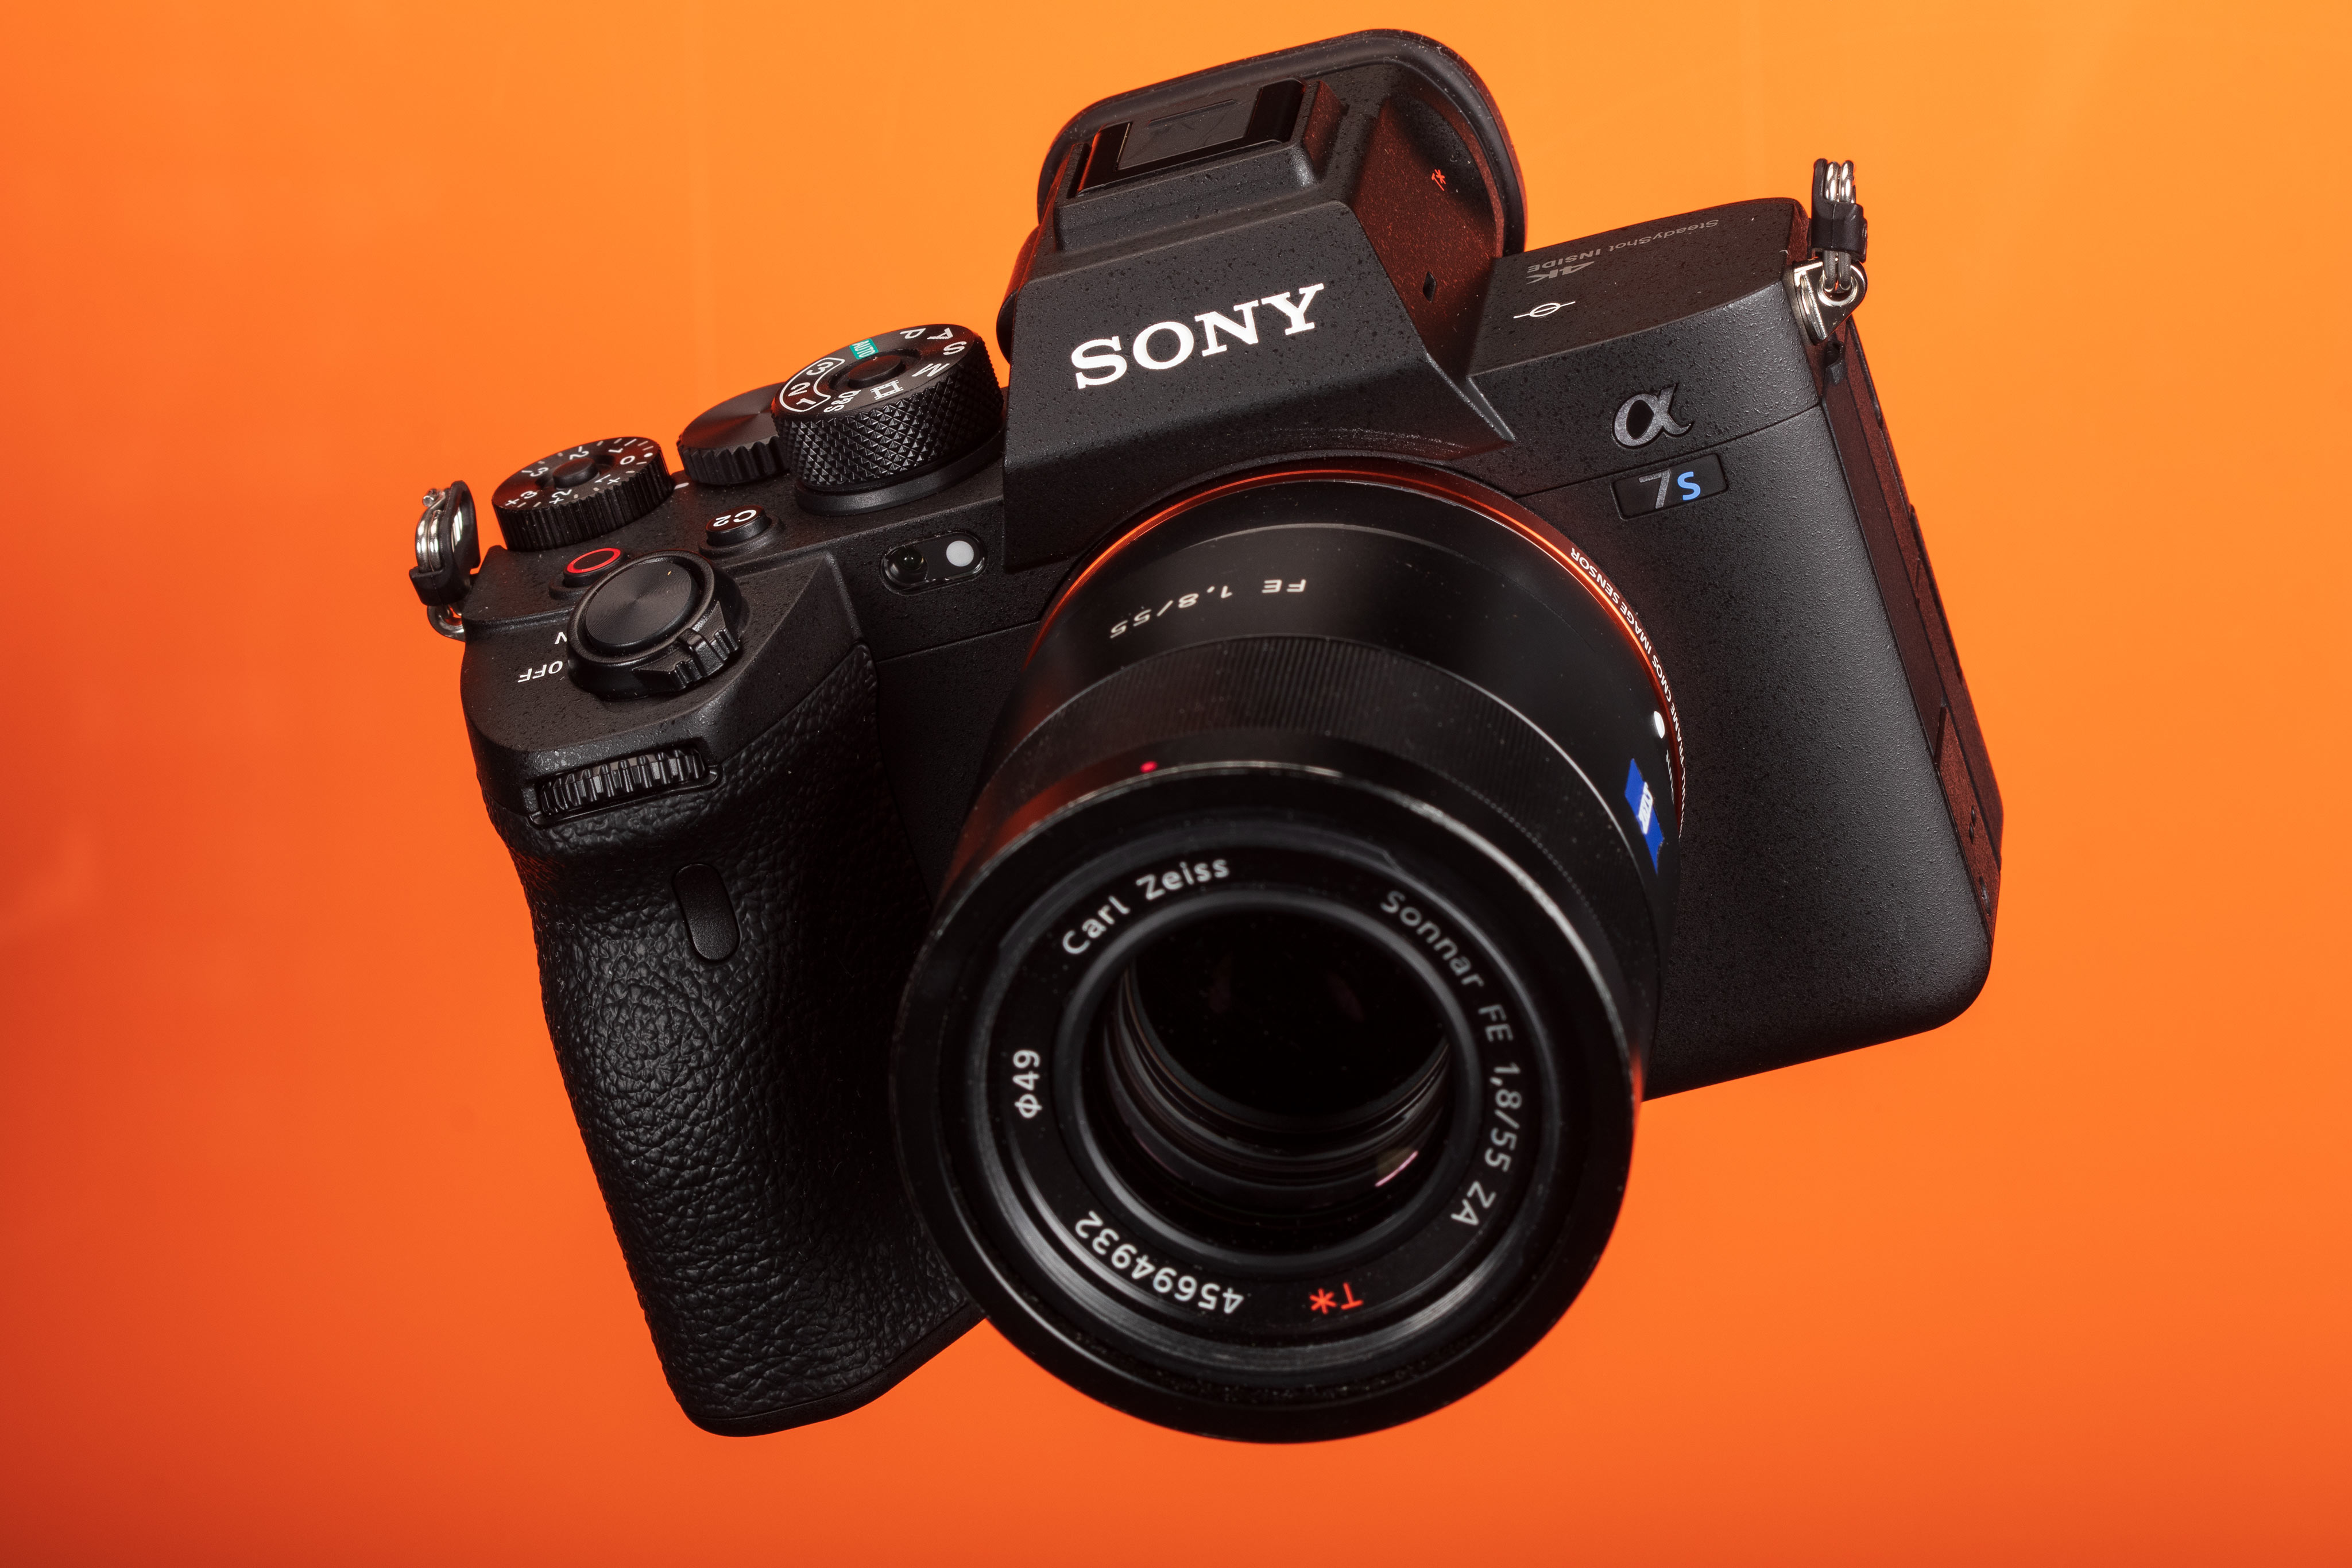 Sony a7S III initial review